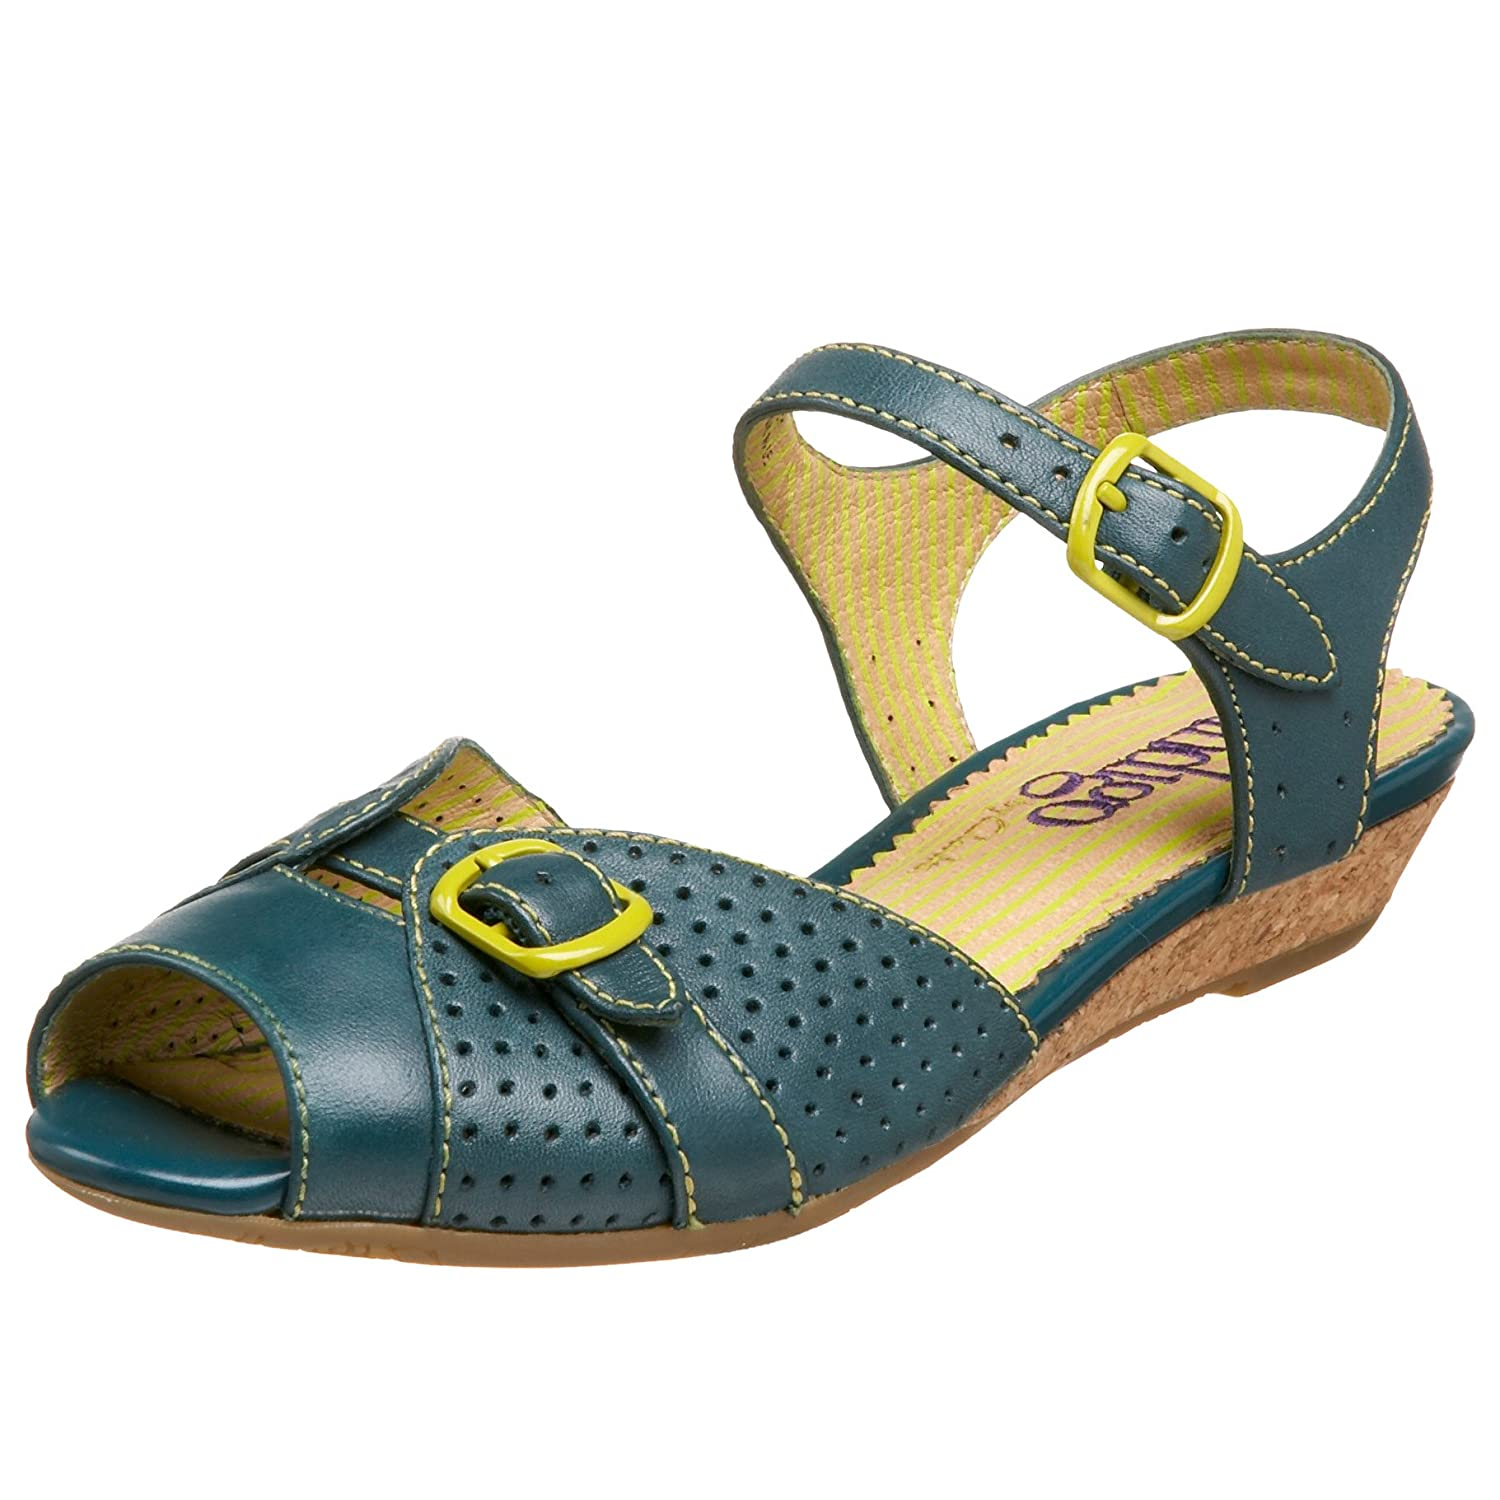 Indigo By Clarks Women's Gelato Sandal - Free Overnight Shipping & Return Shipping: Endless.com :  clarks low heel buckle retro